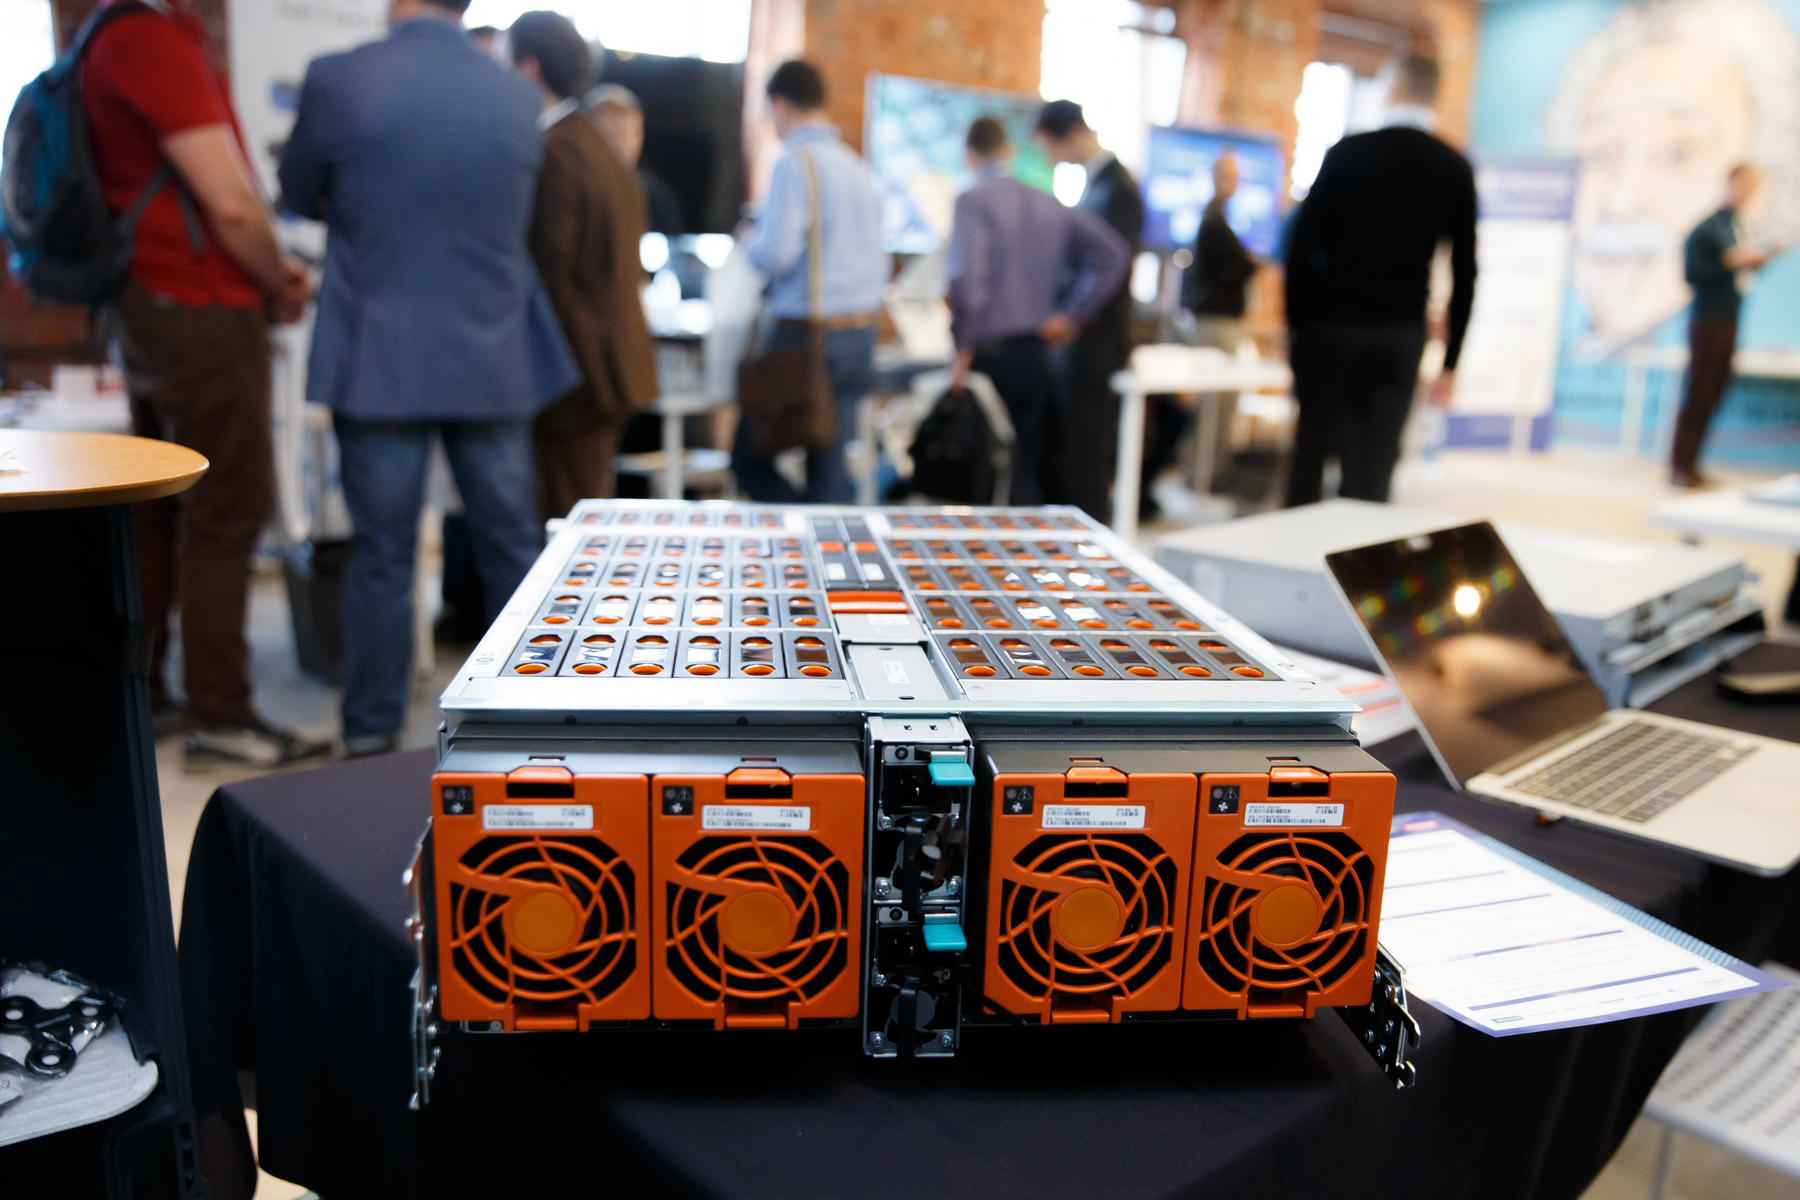 Conference Prostor 2018: questions and answers about the future of storage systems